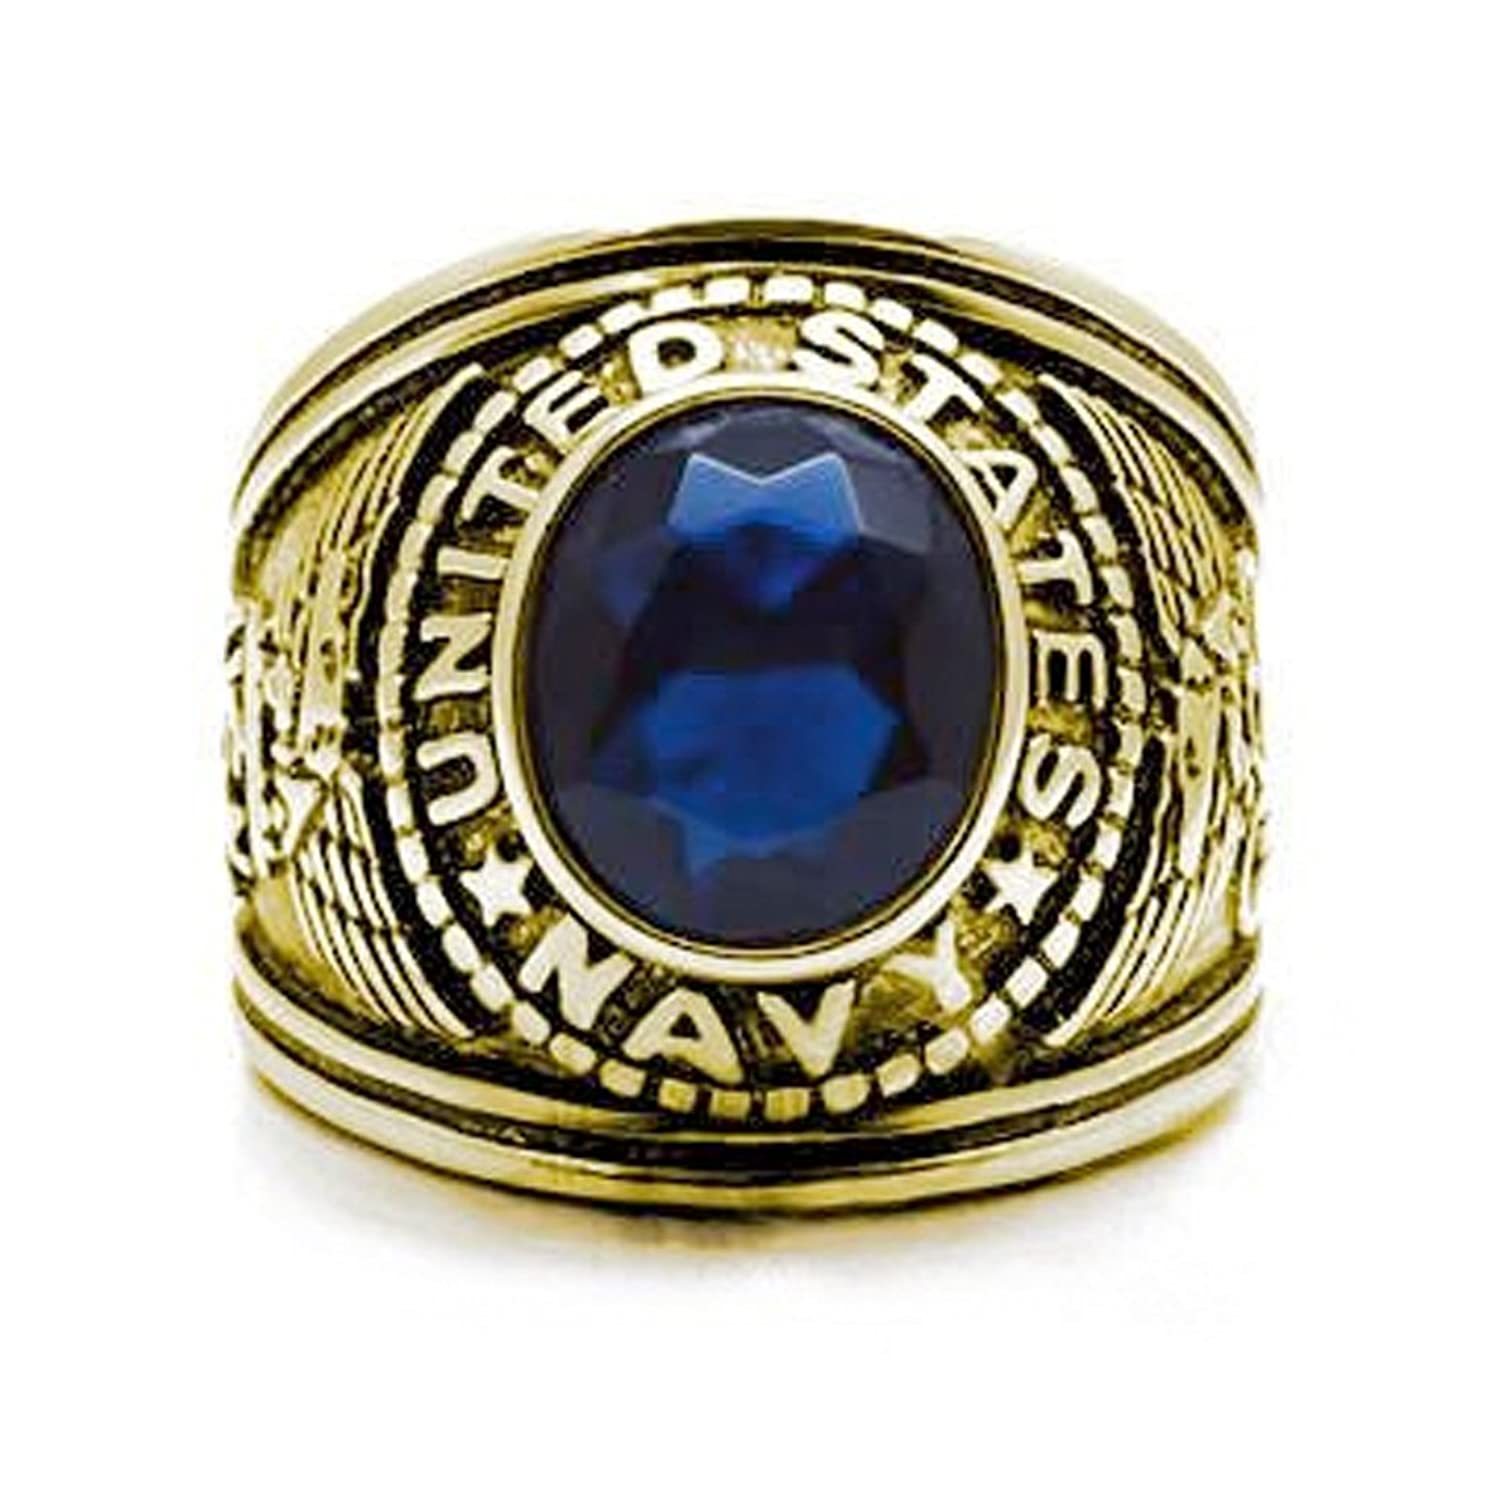 graduation prevnext factory rings any navy class at championship military